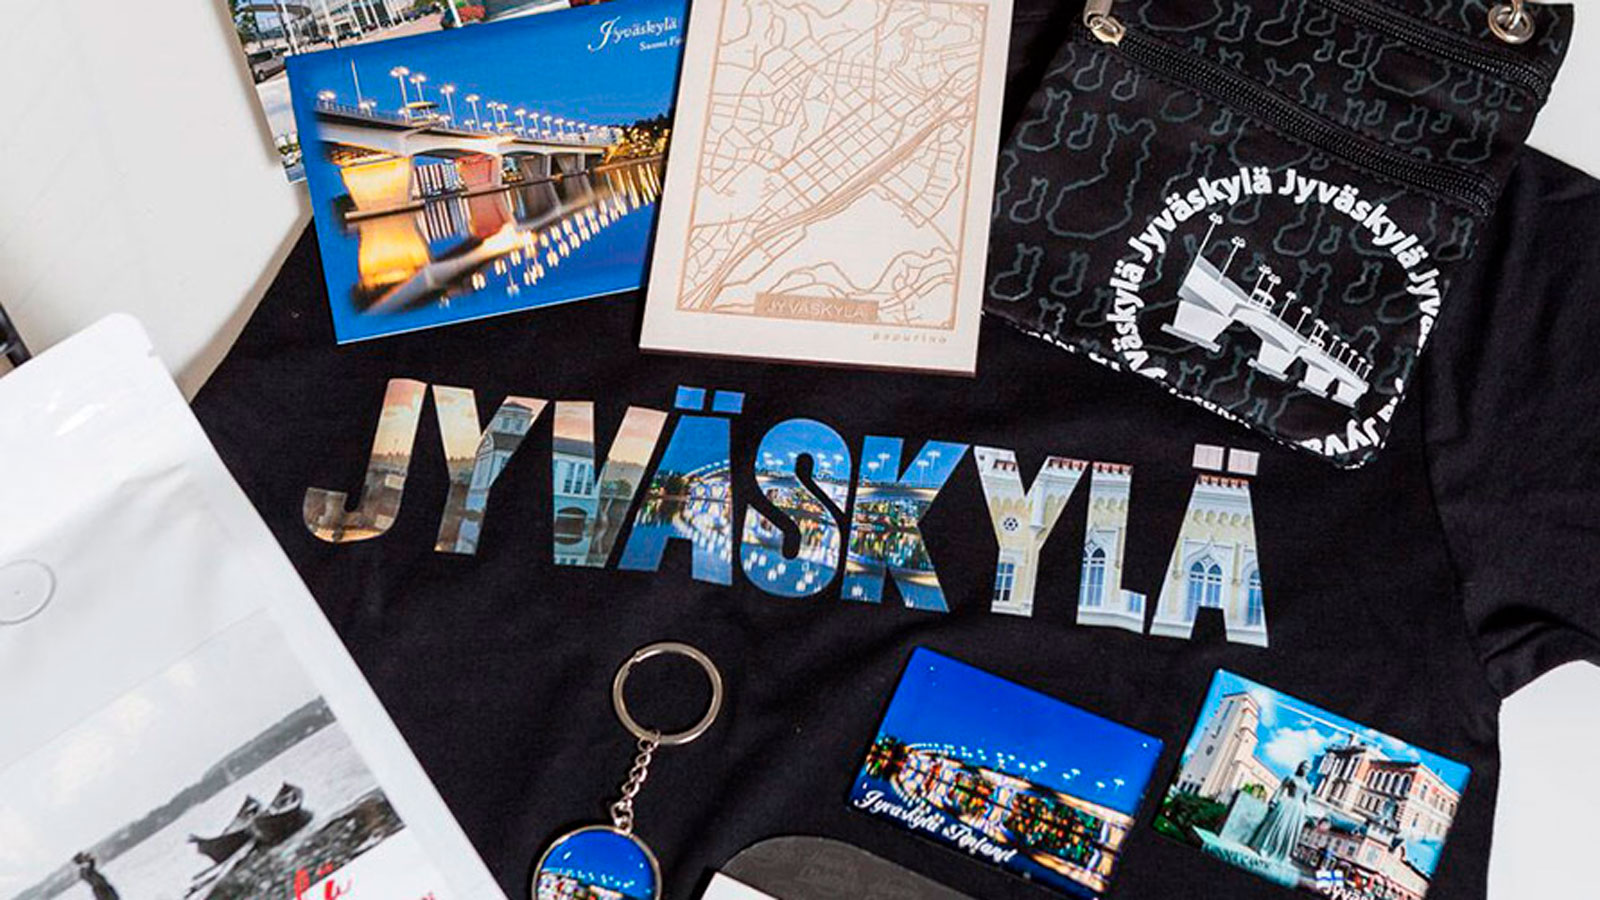 Jyväskylä themed products.